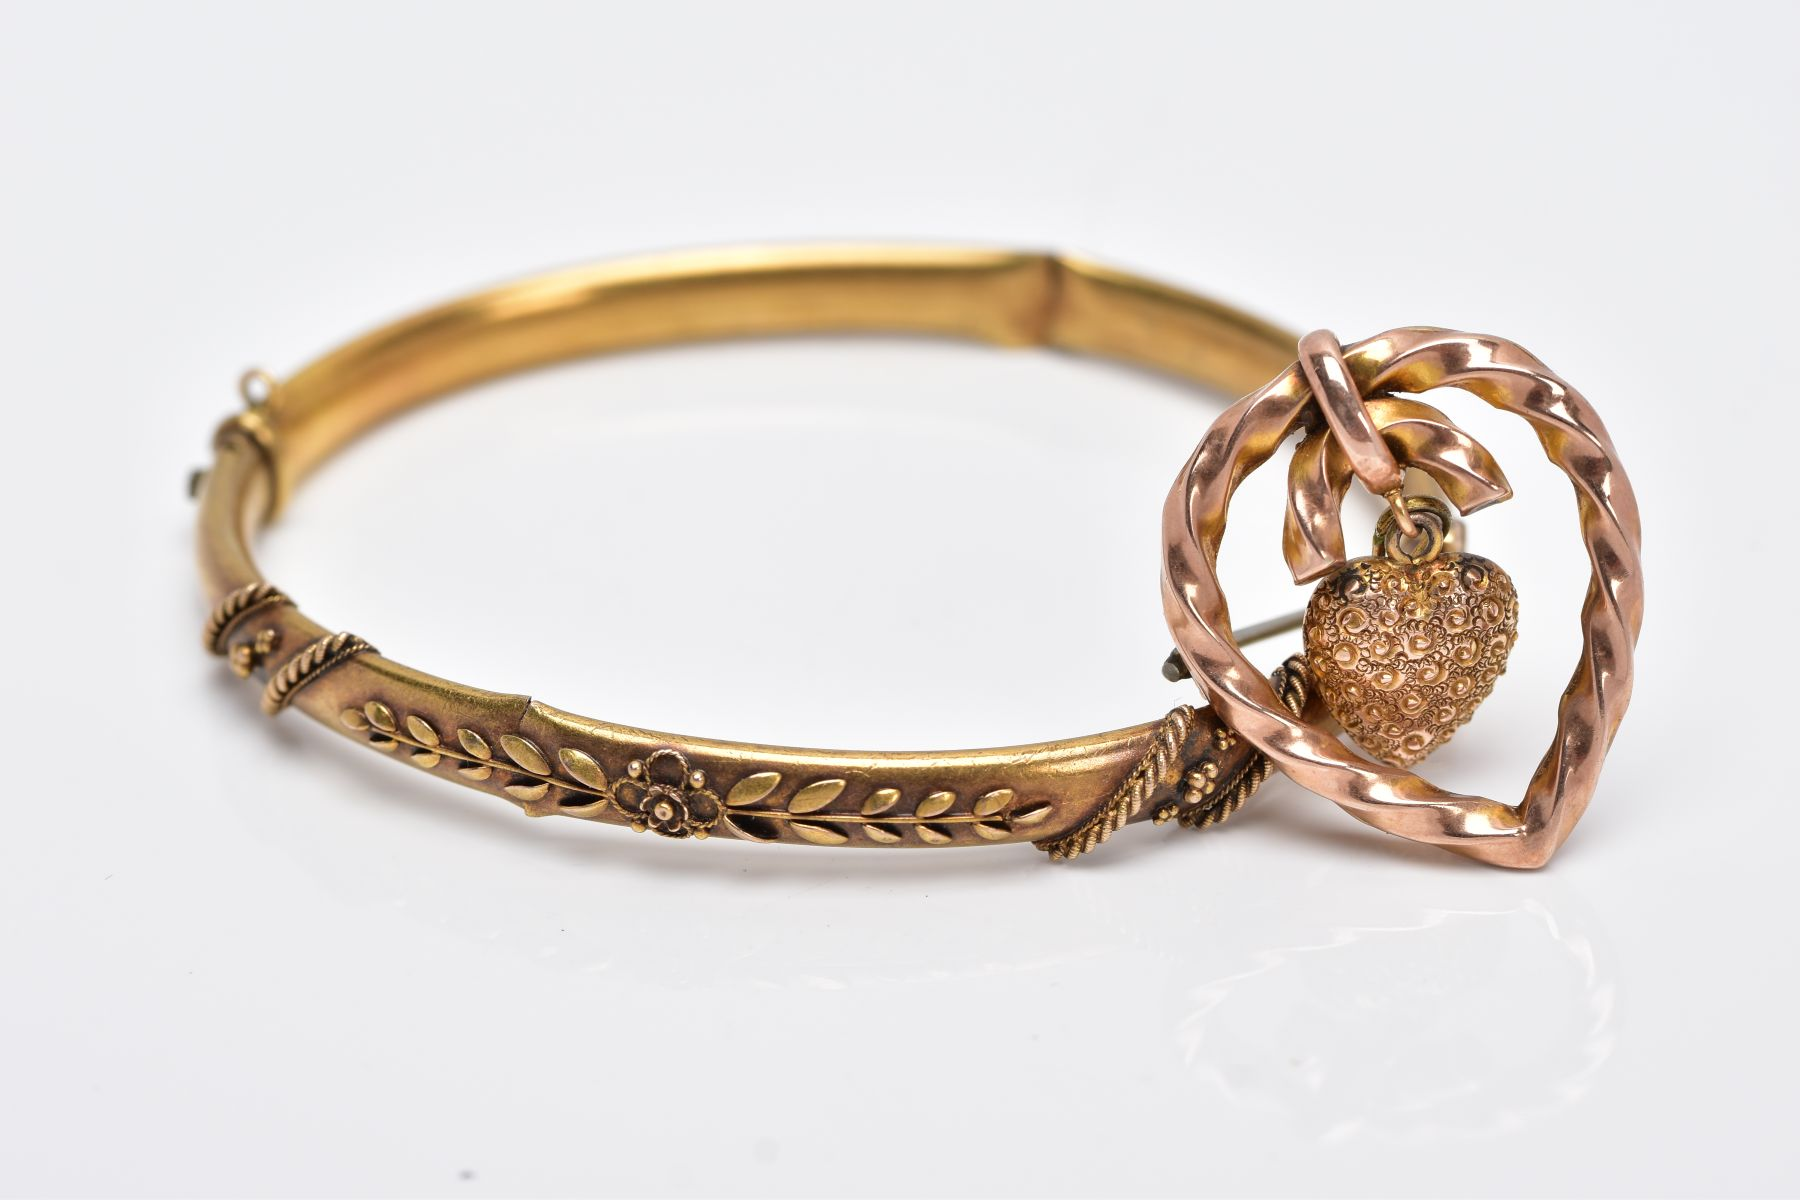 A LATE VICTORIAN BANGLE AND BROOCH, the AF hinged bangle with applied floral and bead design,